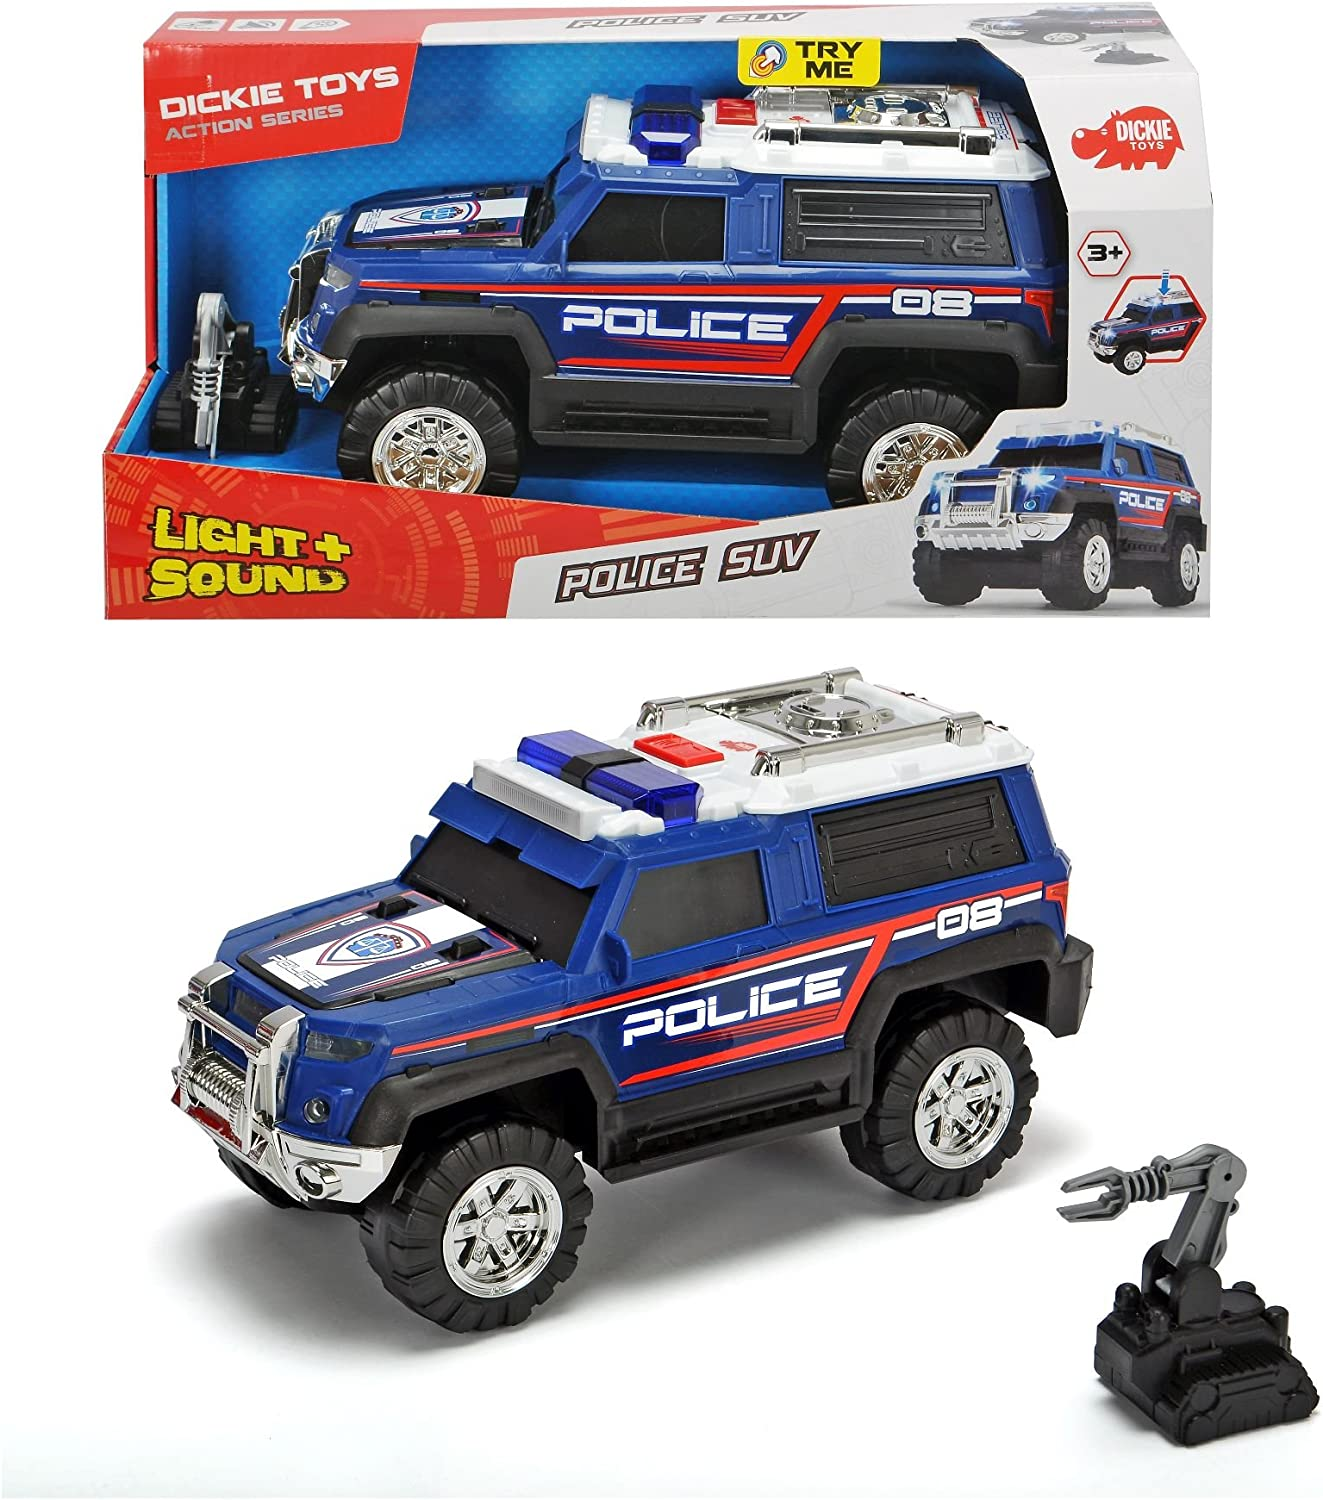 Dickie 203306008 SUV Police Car Toy, Multi Colour: Amazon.co